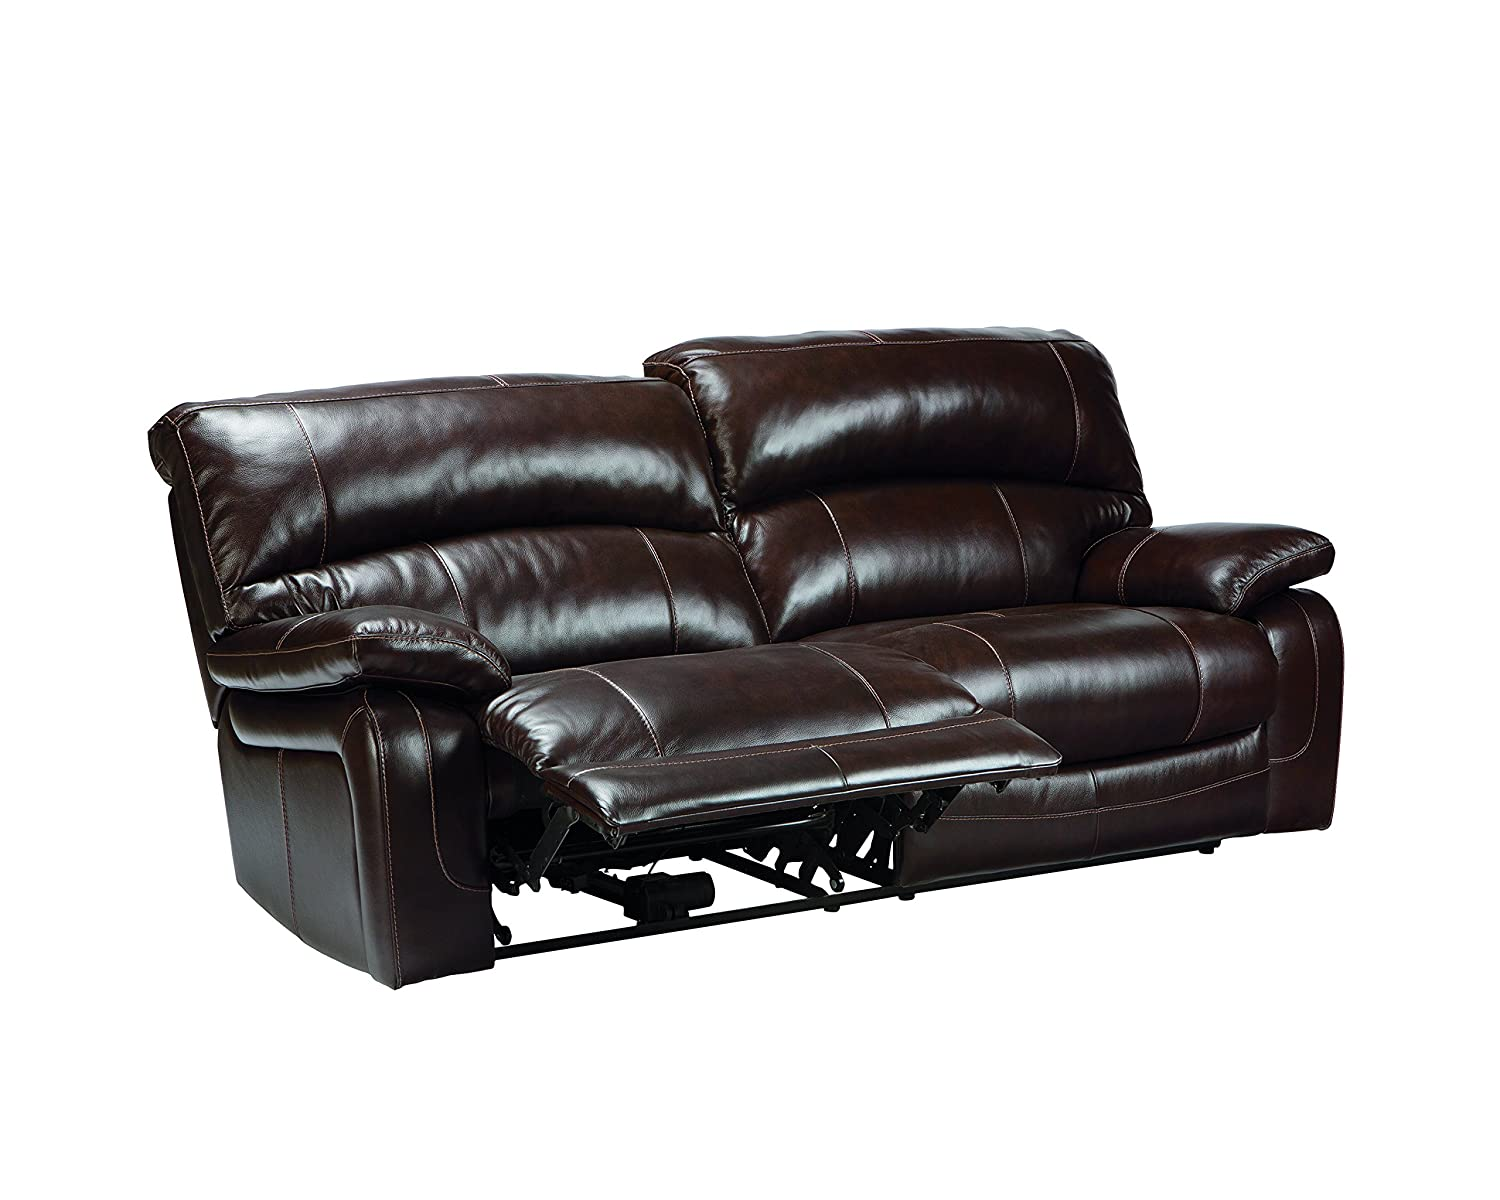 Damacio Recliner Sofa - Power Reclining